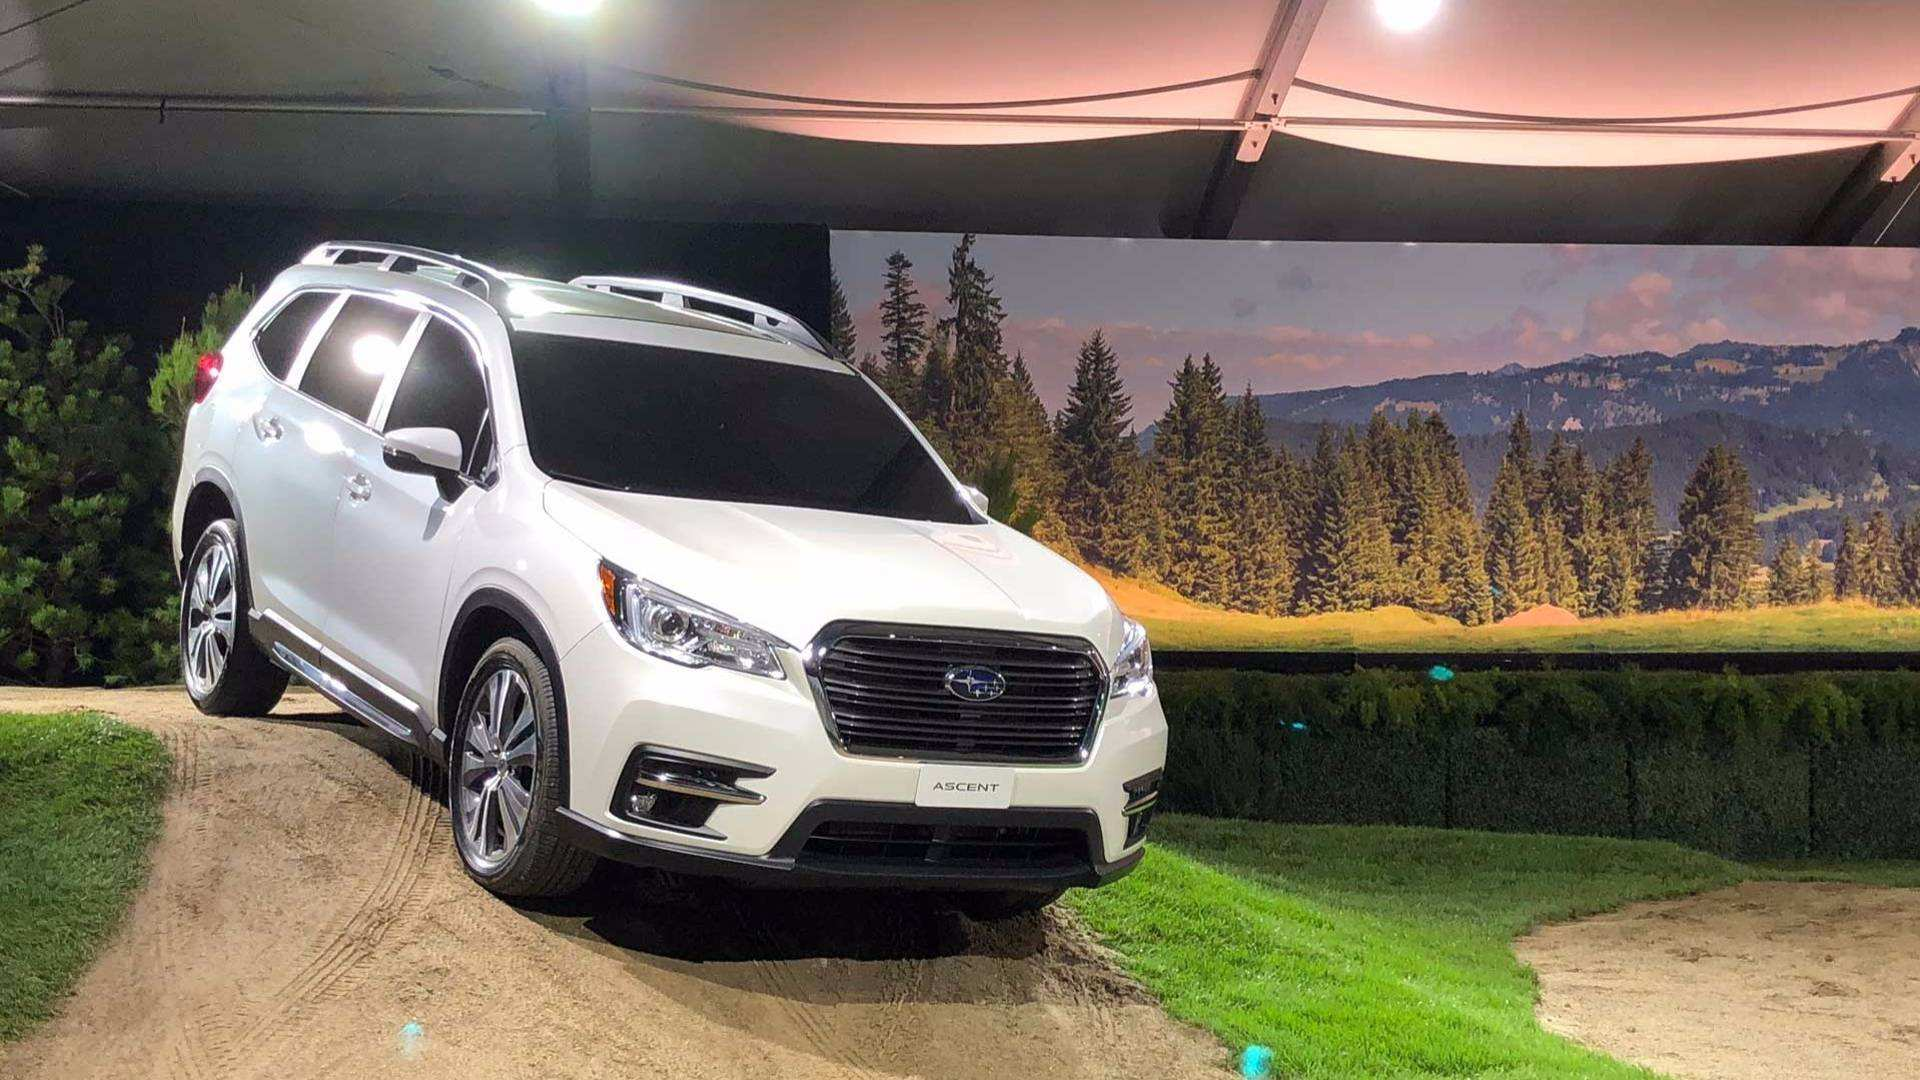 77 Gallery of New Subaru Unveils 2019 Ascent Price And Release Date Prices with New Subaru Unveils 2019 Ascent Price And Release Date